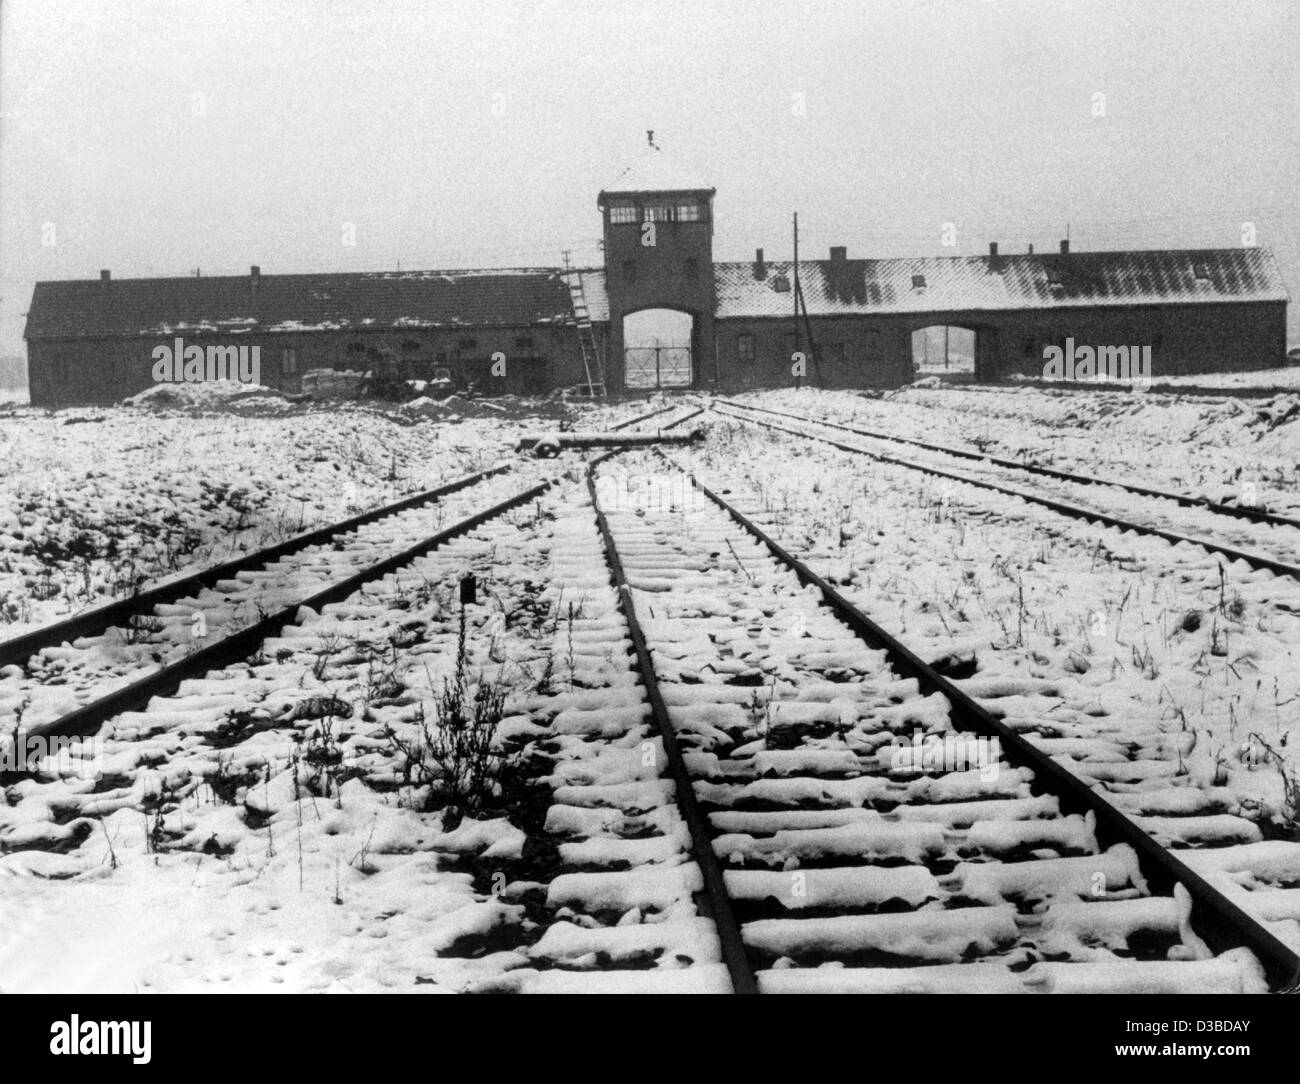 Where Was The Auschwitz Camp Located: Gas Chambers Black And White Stock Photos & Images